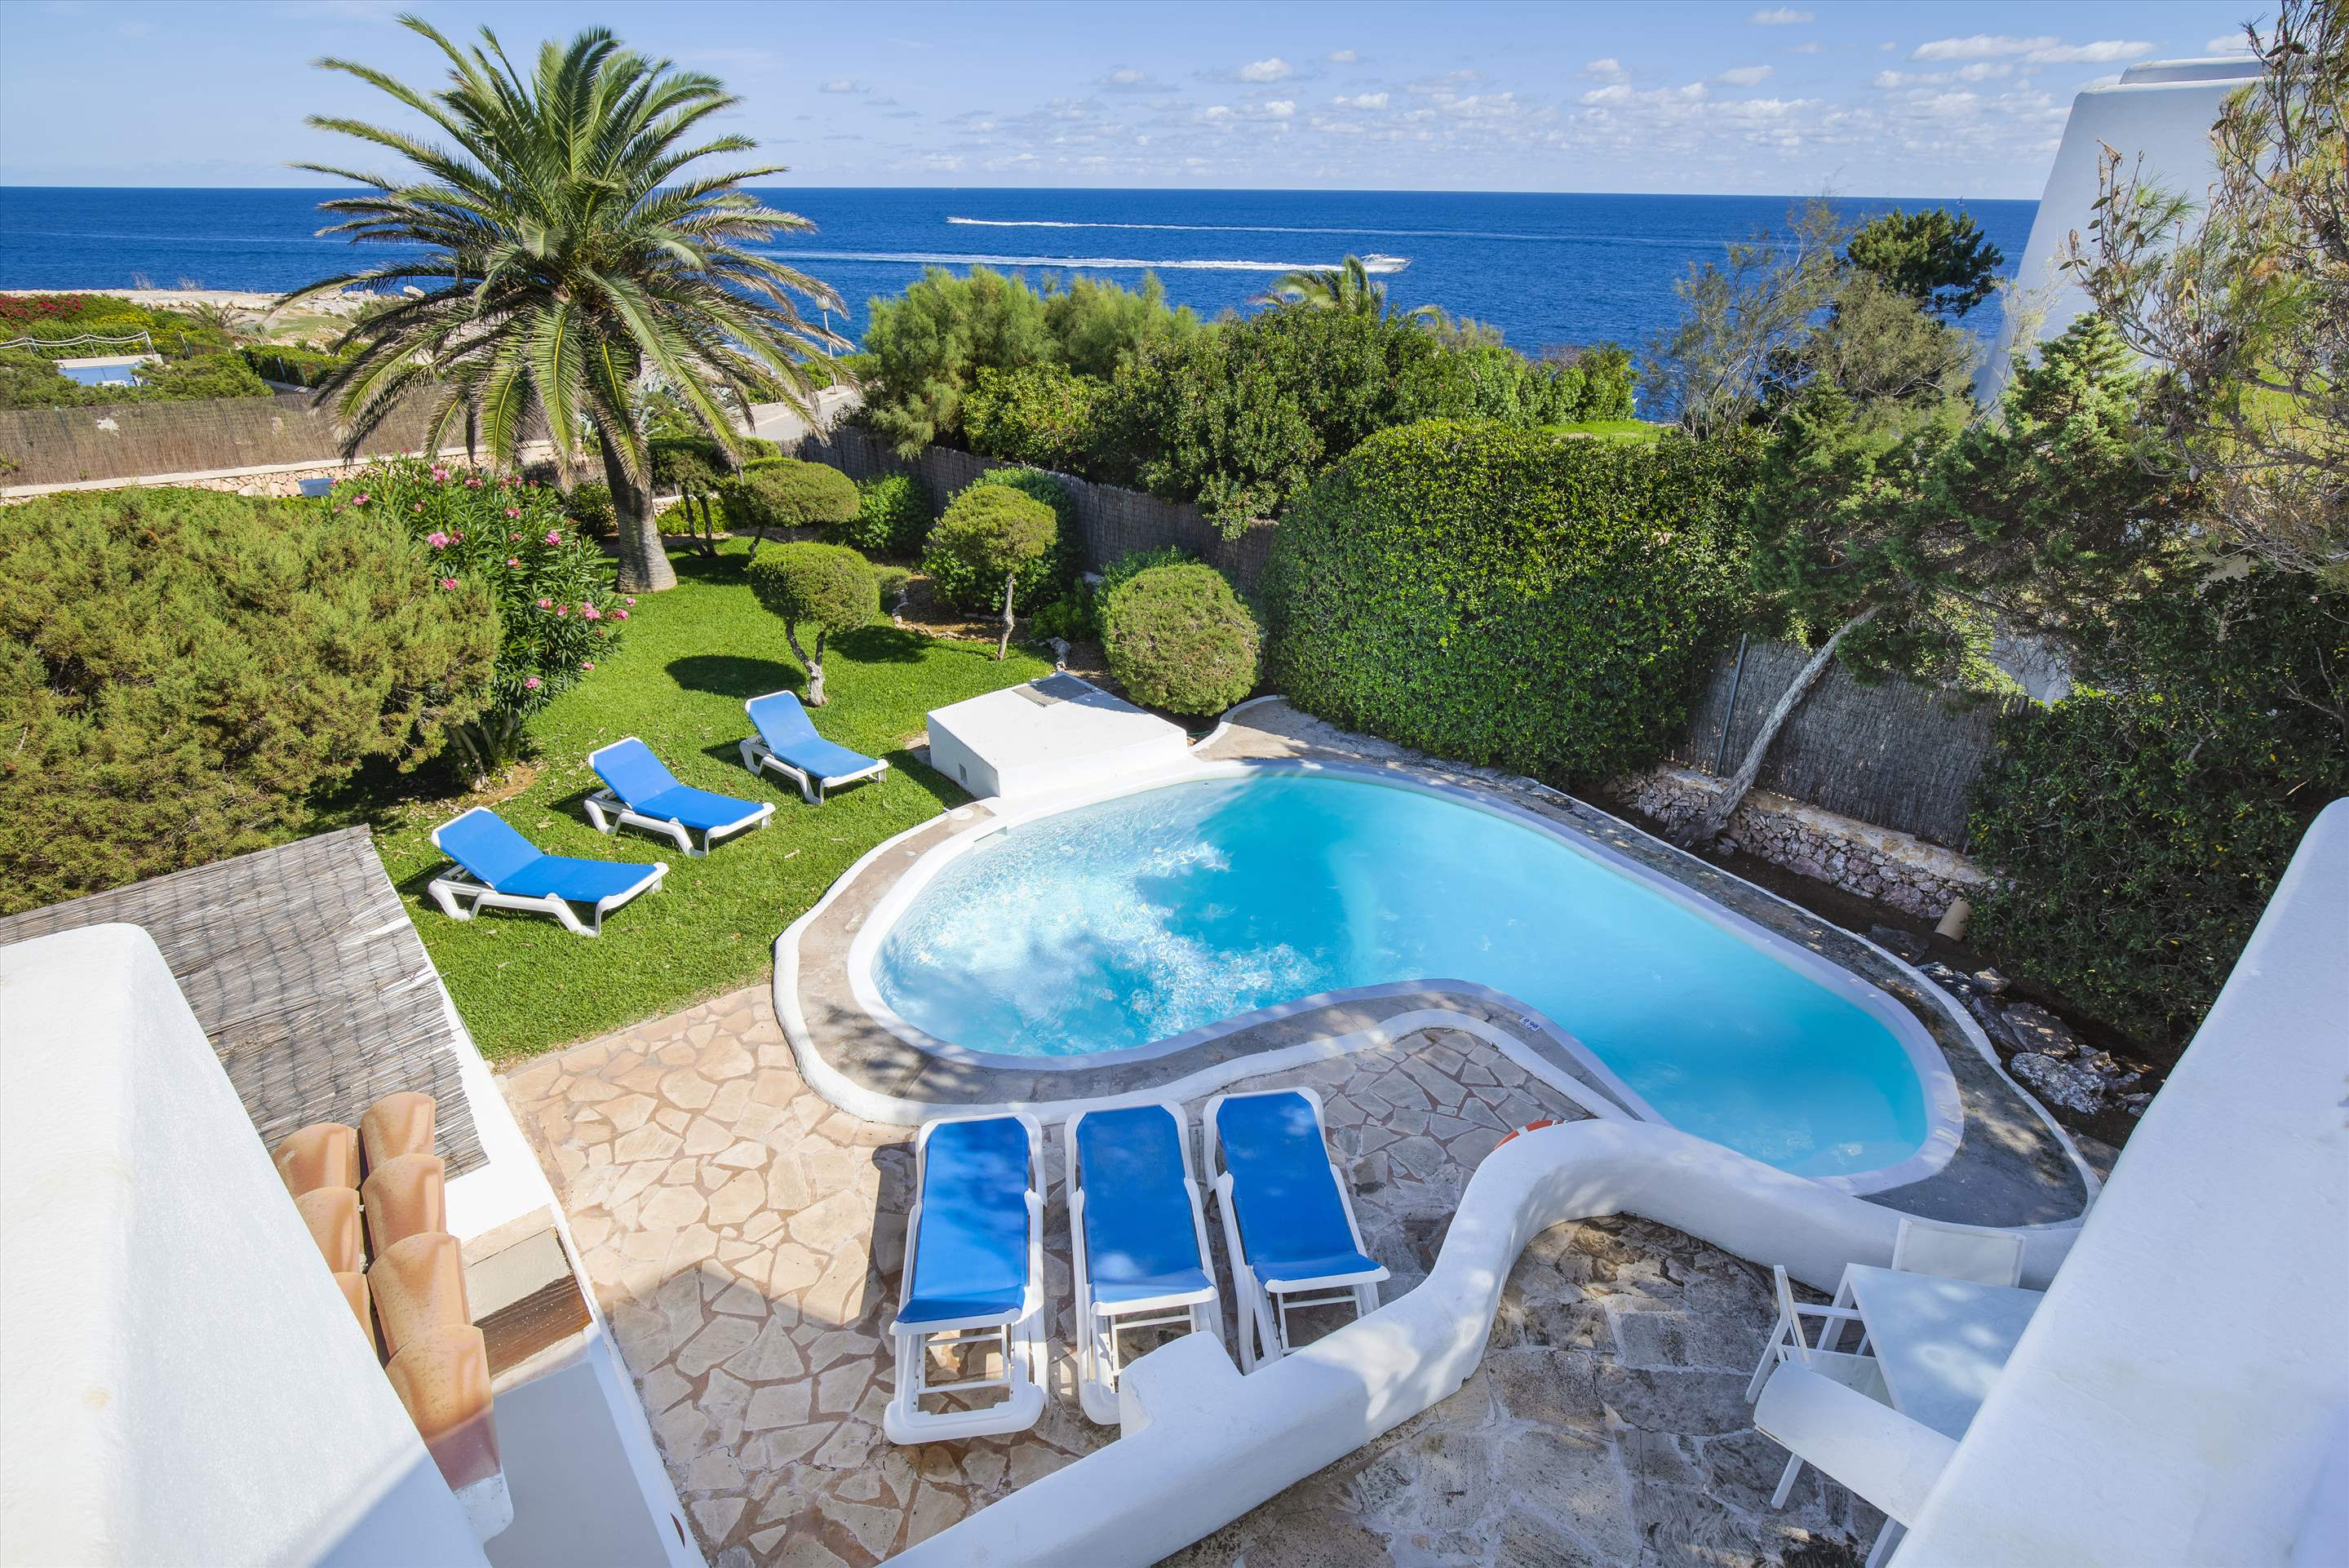 Mar Gran, 4 bedroom villa in Cala d'Or , Majorca Photo #4